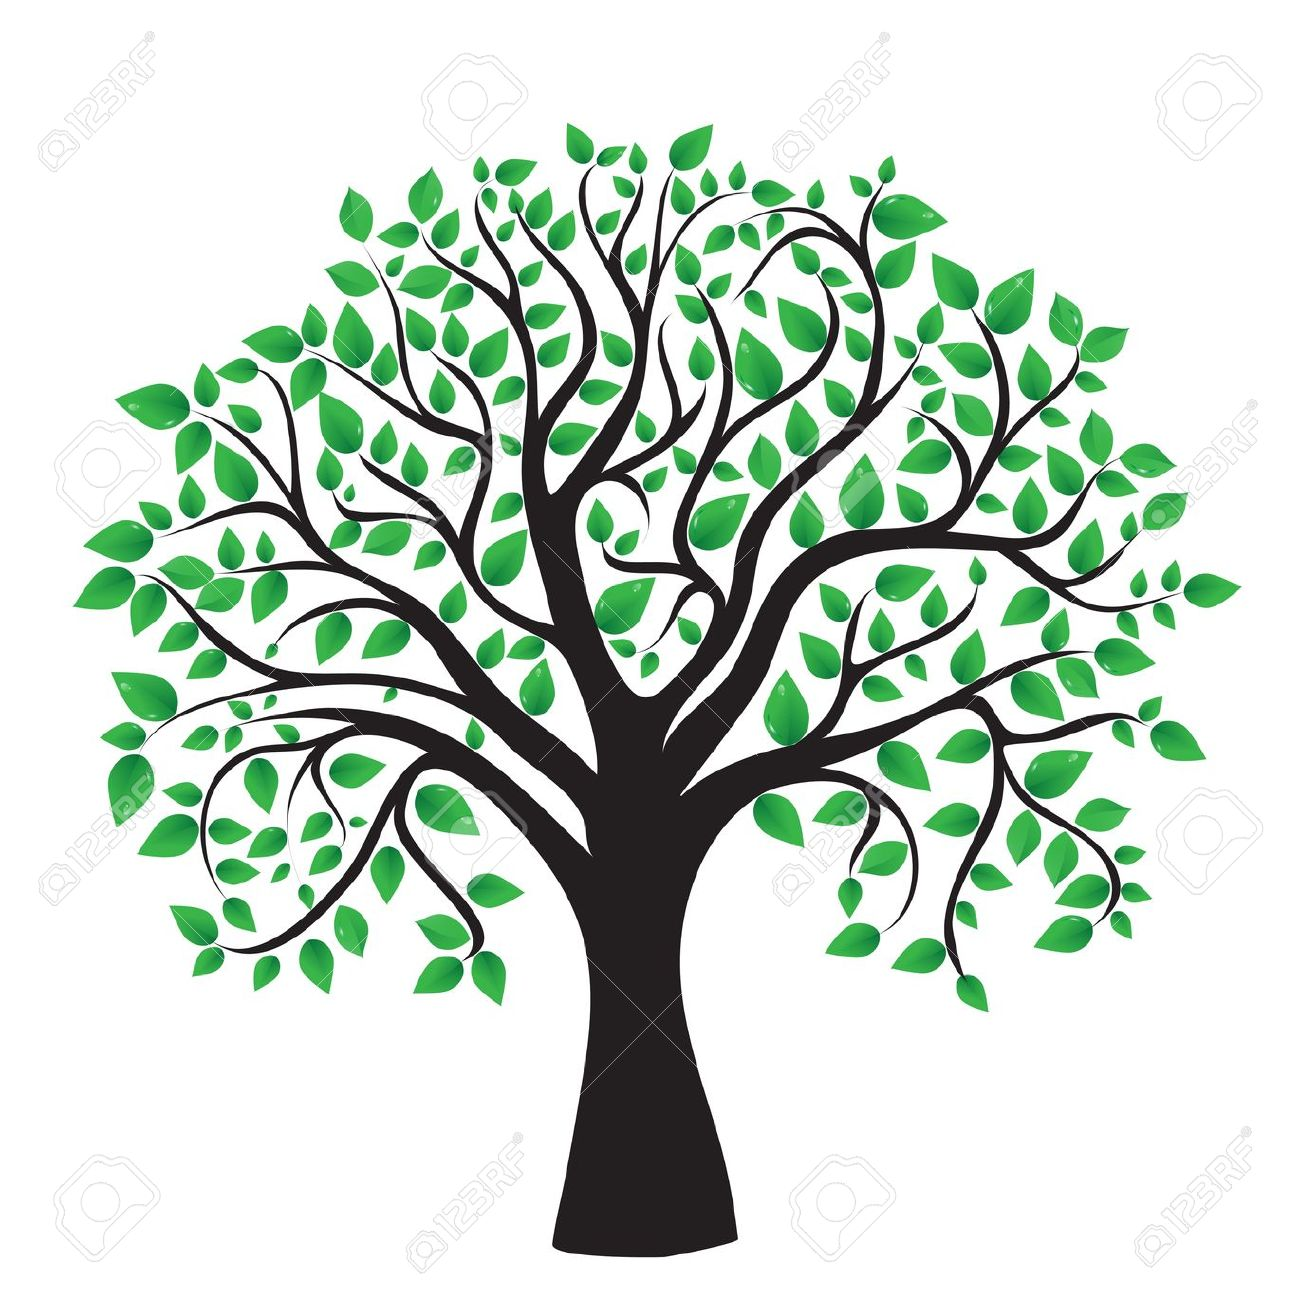 Tree Clipart With Transparent Background.